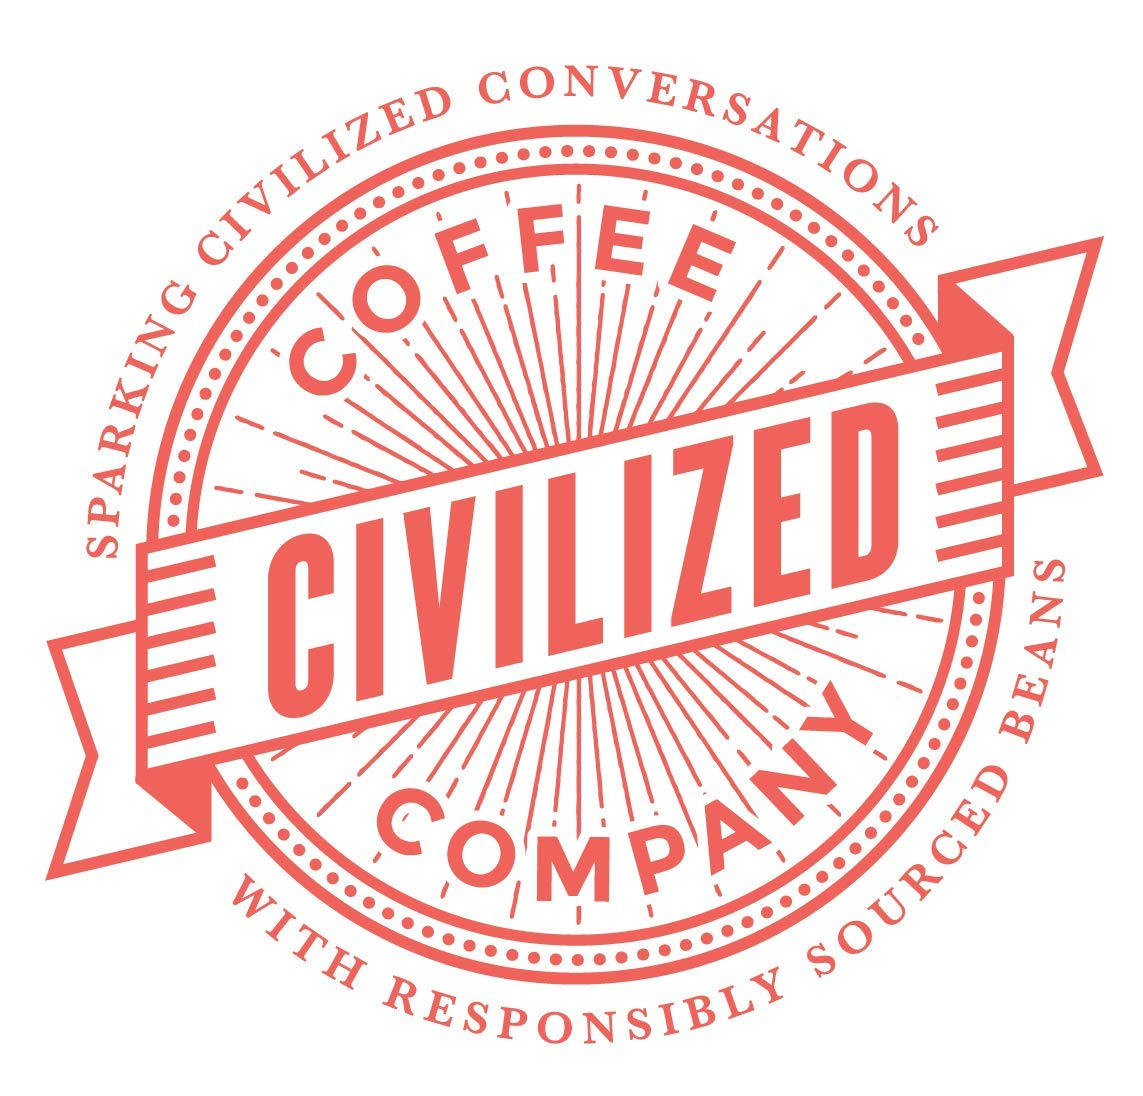 Green Coffee Beans Whole Unroasted, Honduras SHG EP, Bulk 10 lbs by CIVILIZED COFFEE (Image #5)